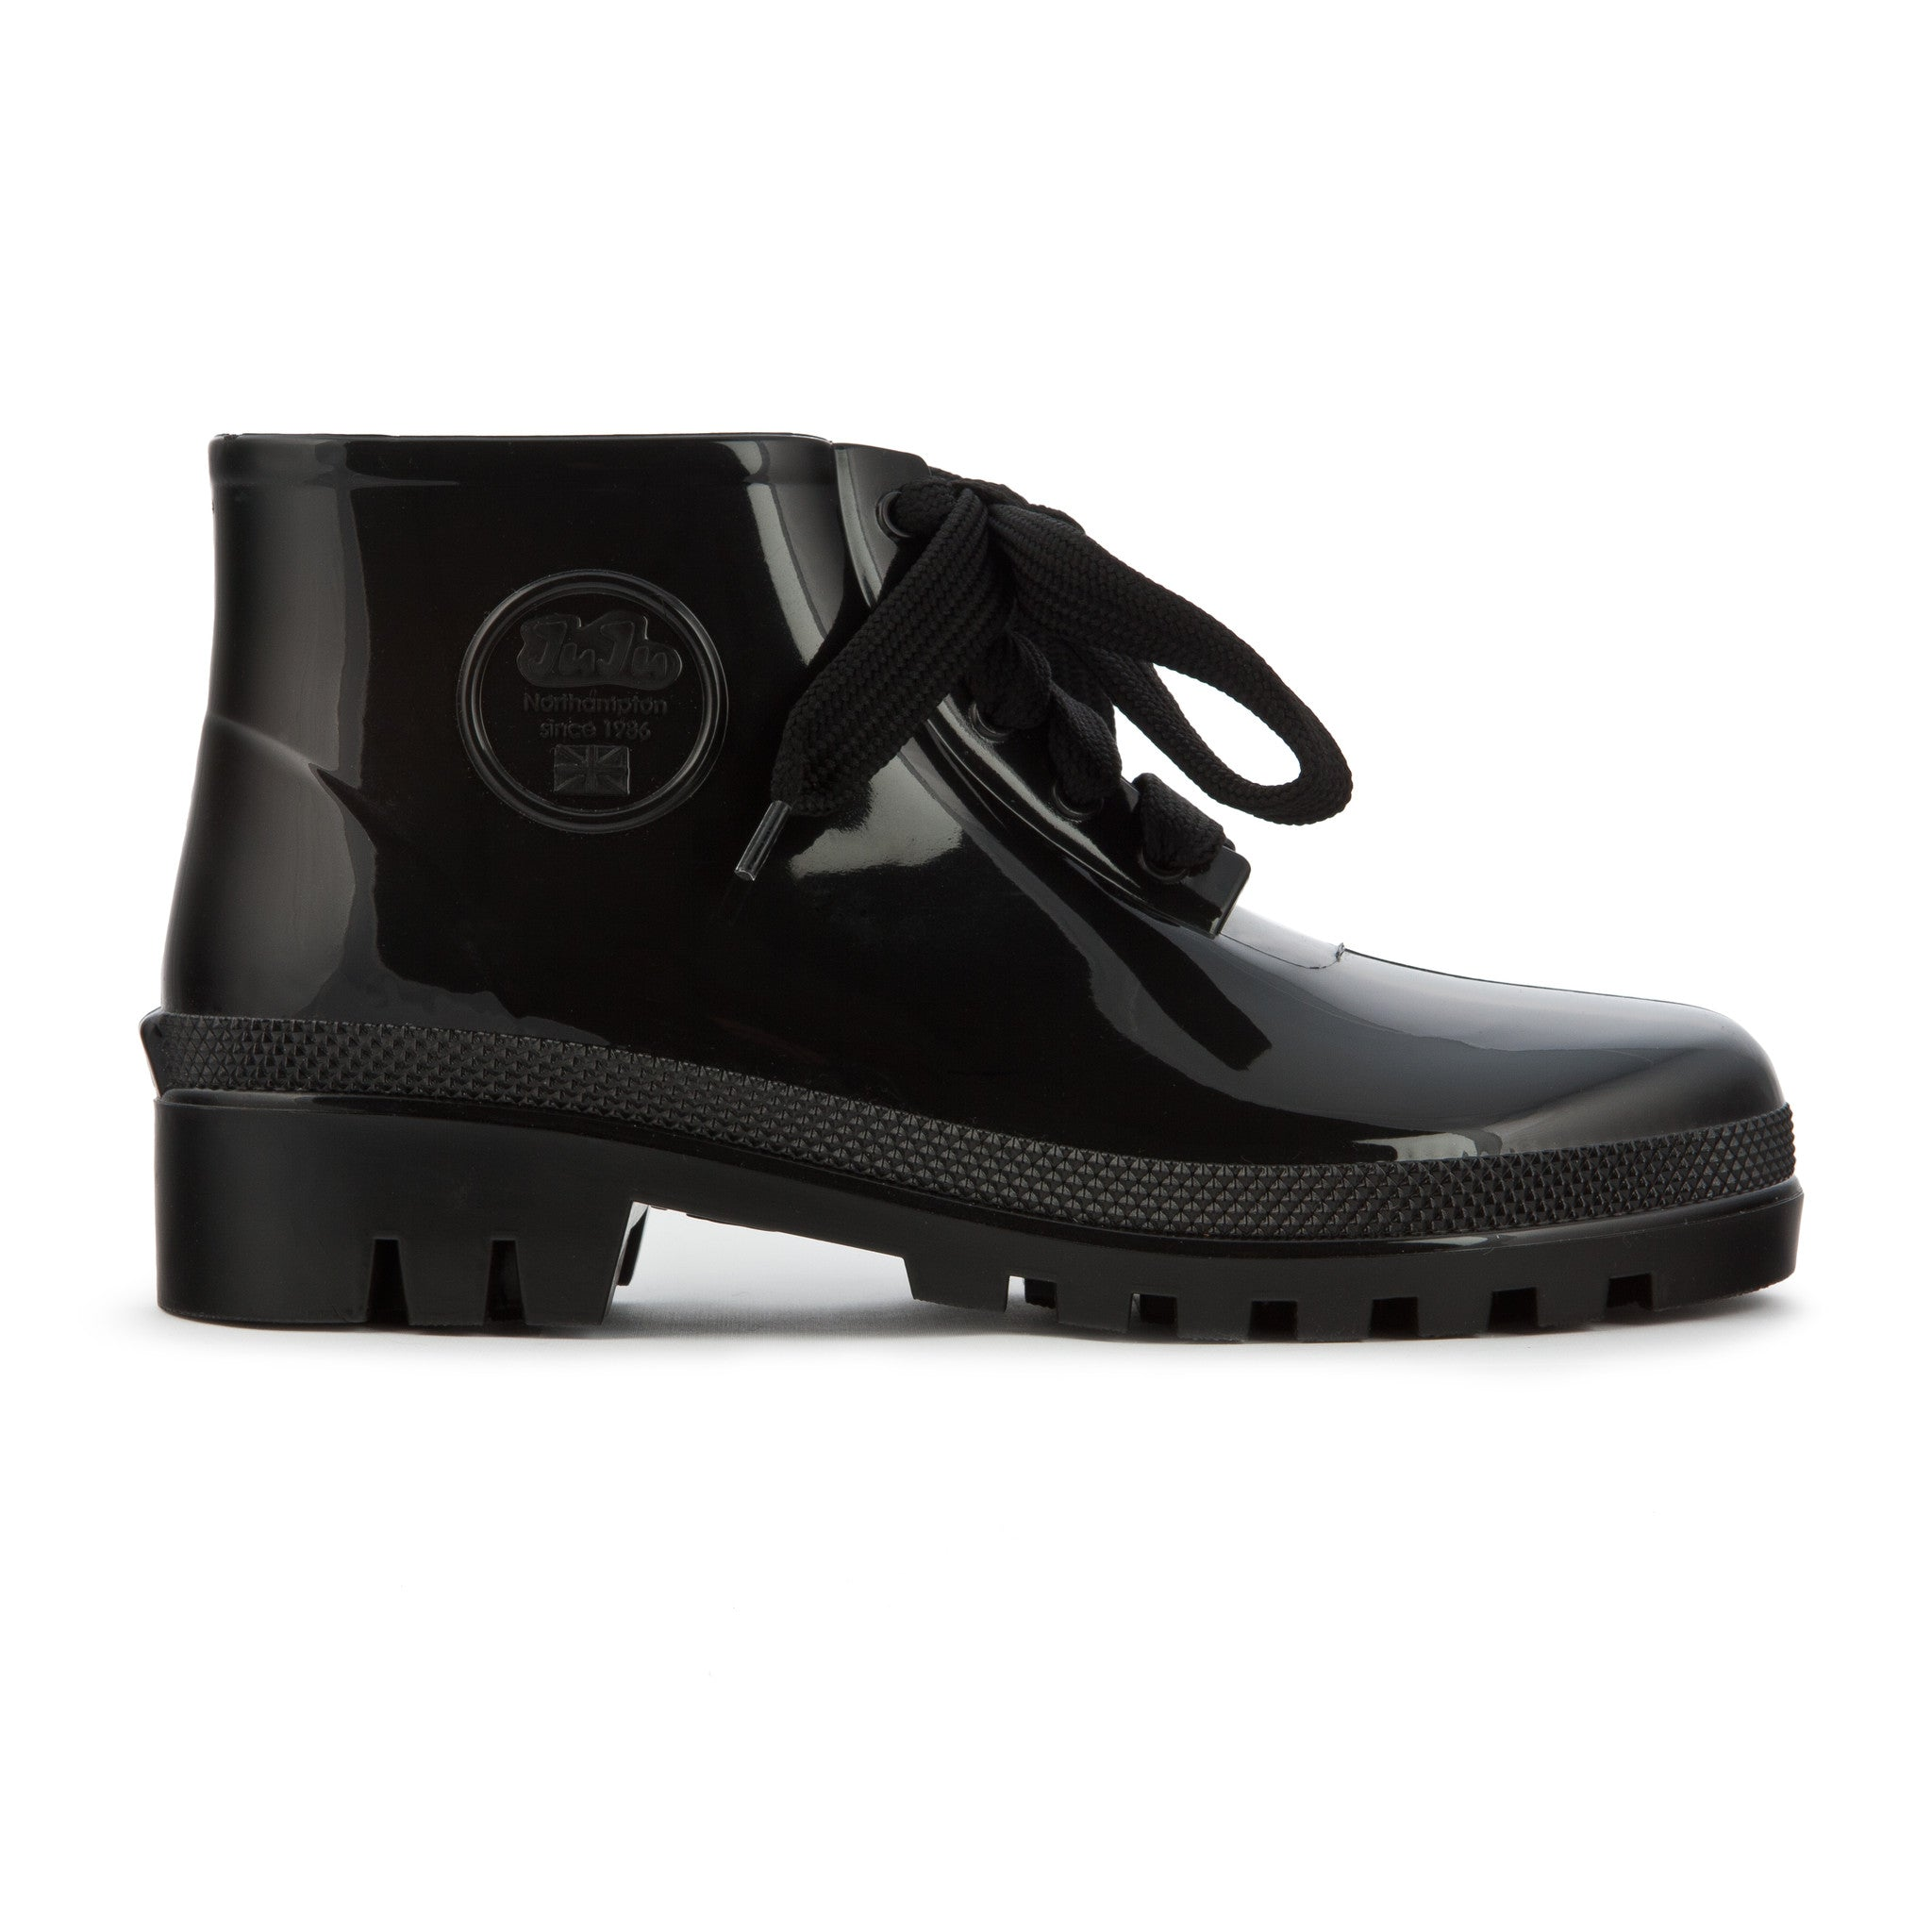 JuJu Jellyboots (Black) - Plus Minus